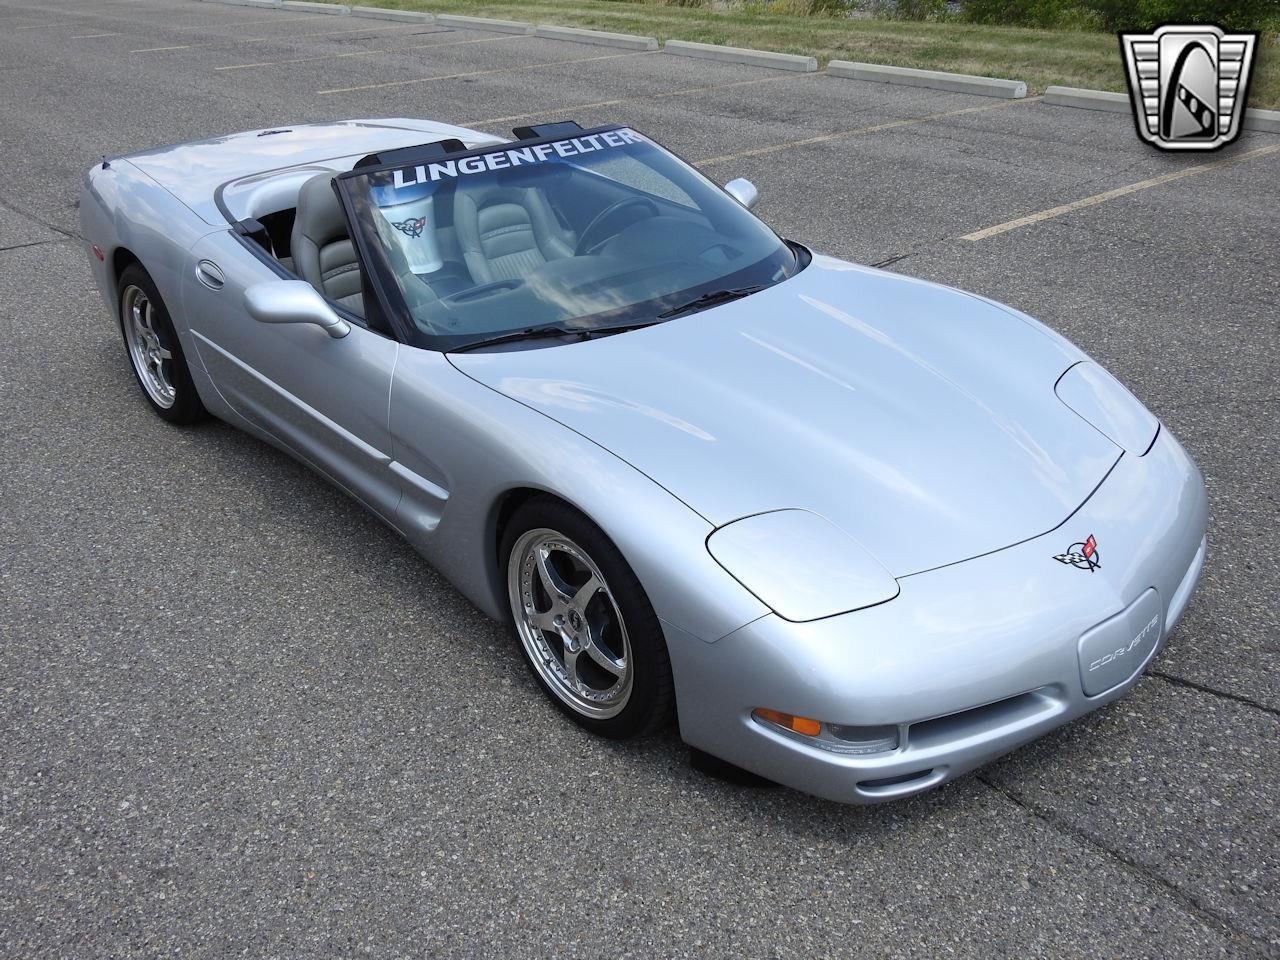 2000 Chevrolet Corvette (CC-1366121) for sale in O'Fallon, Illinois